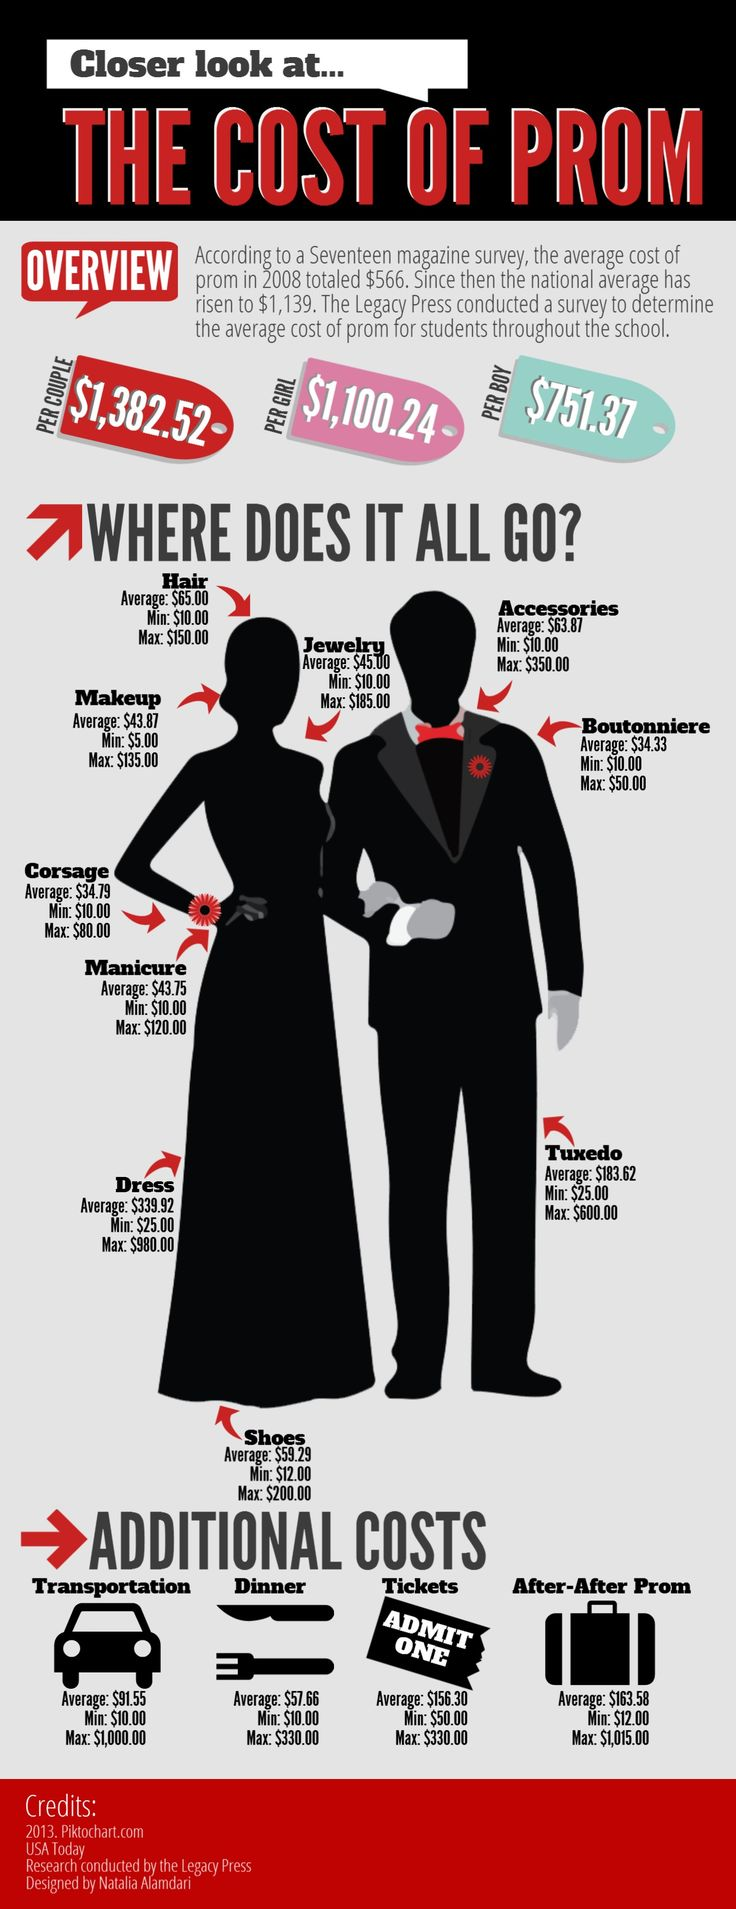 INFO GRAPHIC: this would be an interesting topic for an unfit graphic see how much the average student spends on prom